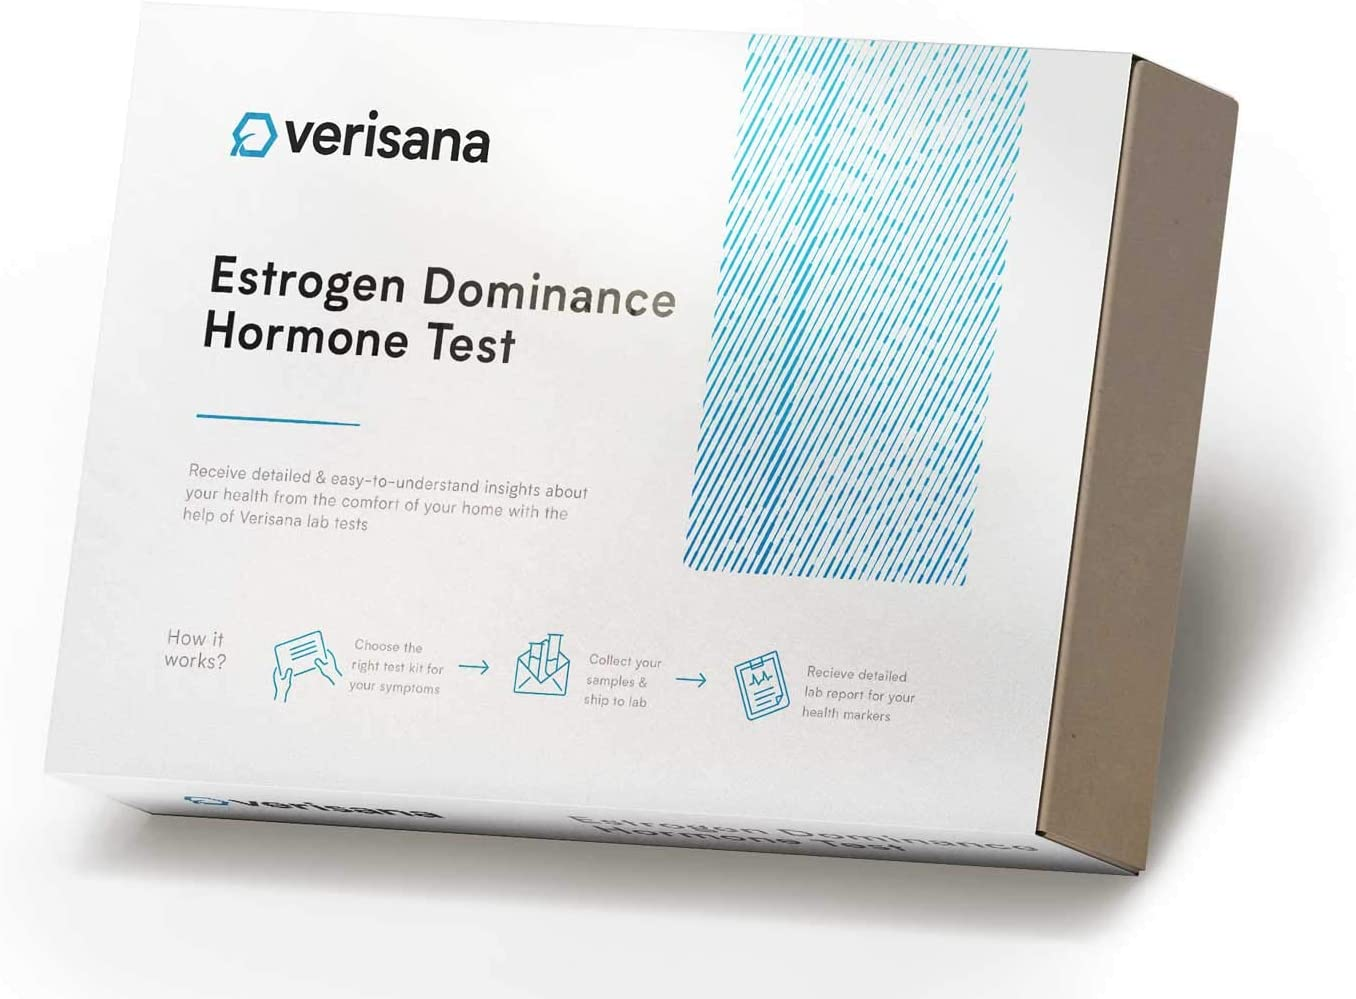 Estradiol & Progesterone (E2 & Pg) Female Hormone Test | Saliva Hormone Test Kit for Women | Diagnose Estrogen Dominance, Progesterone Deficiencies, PMS, etc. | Verisana